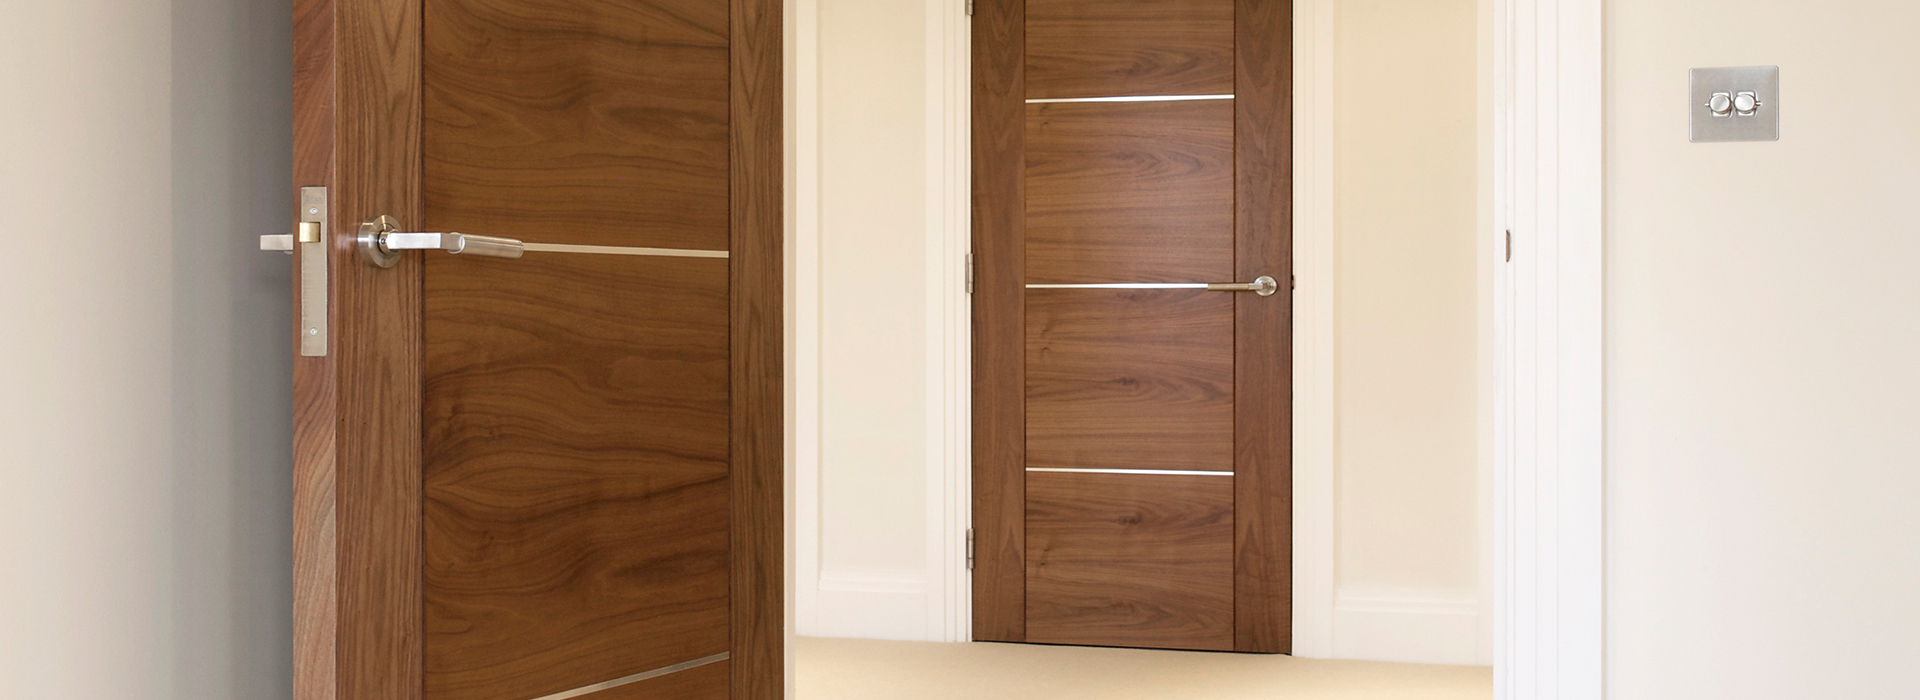 Walnut interior doors with chrome handles